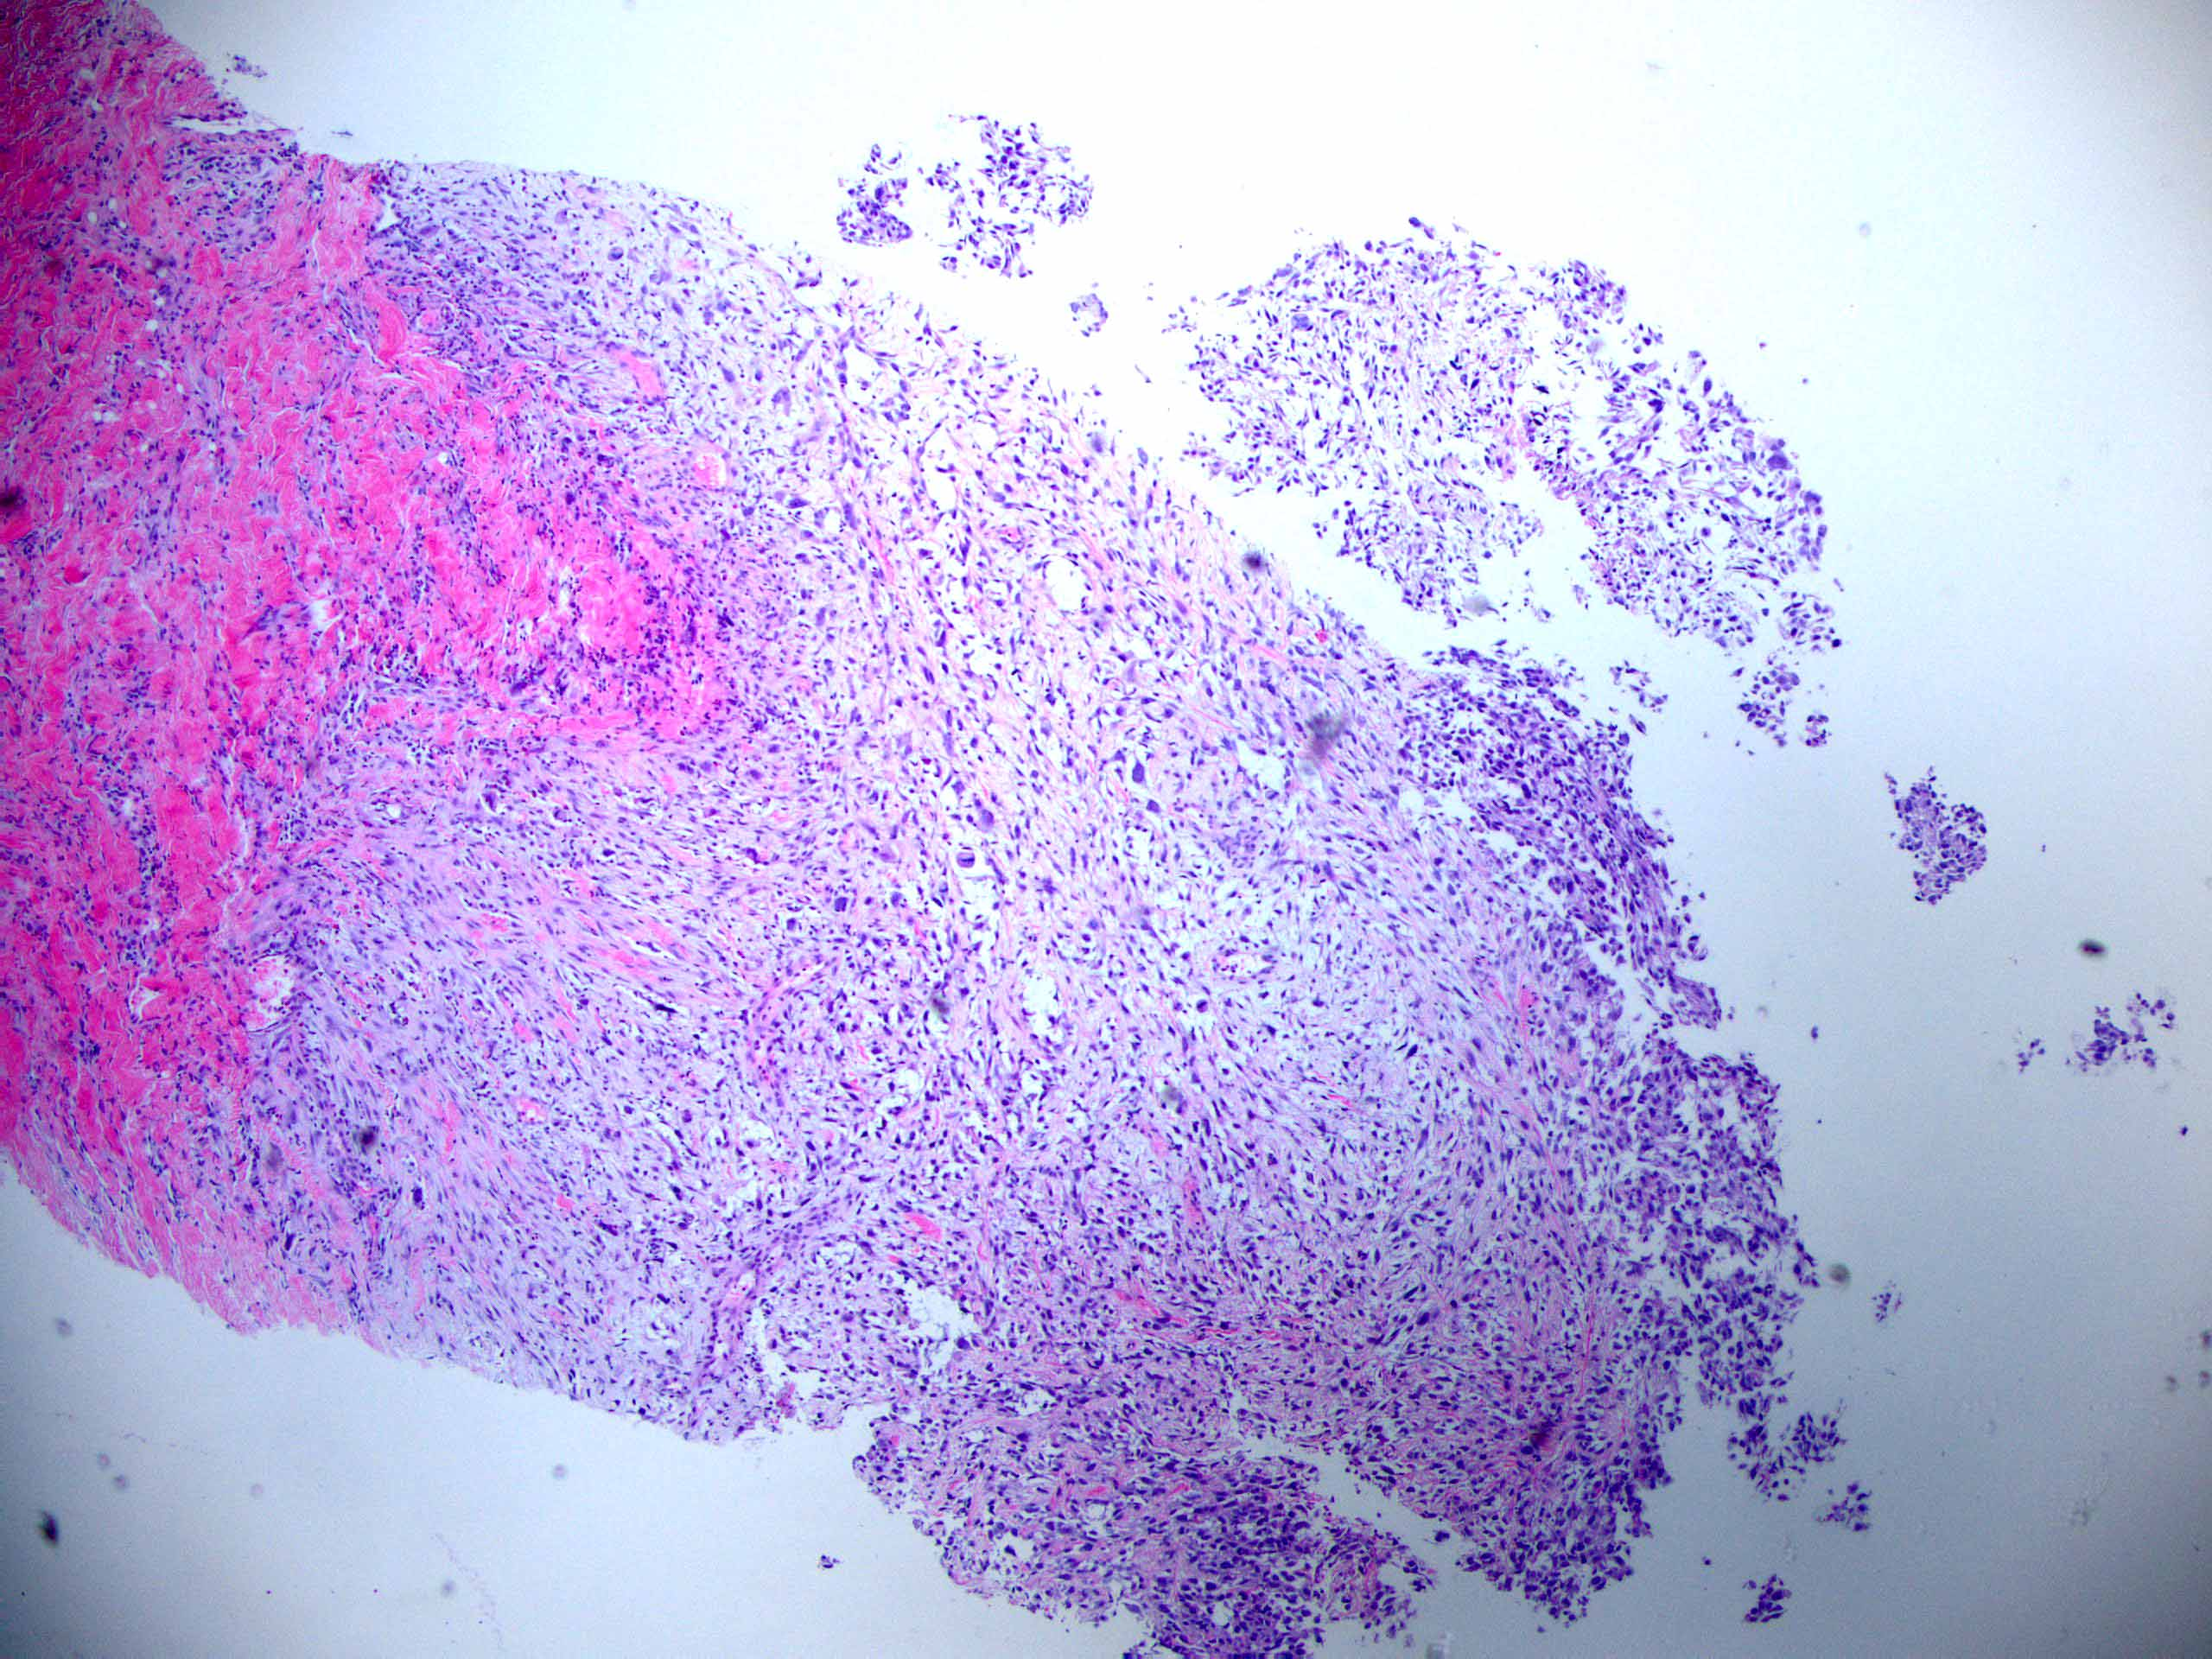 Spindle cell carcinoma